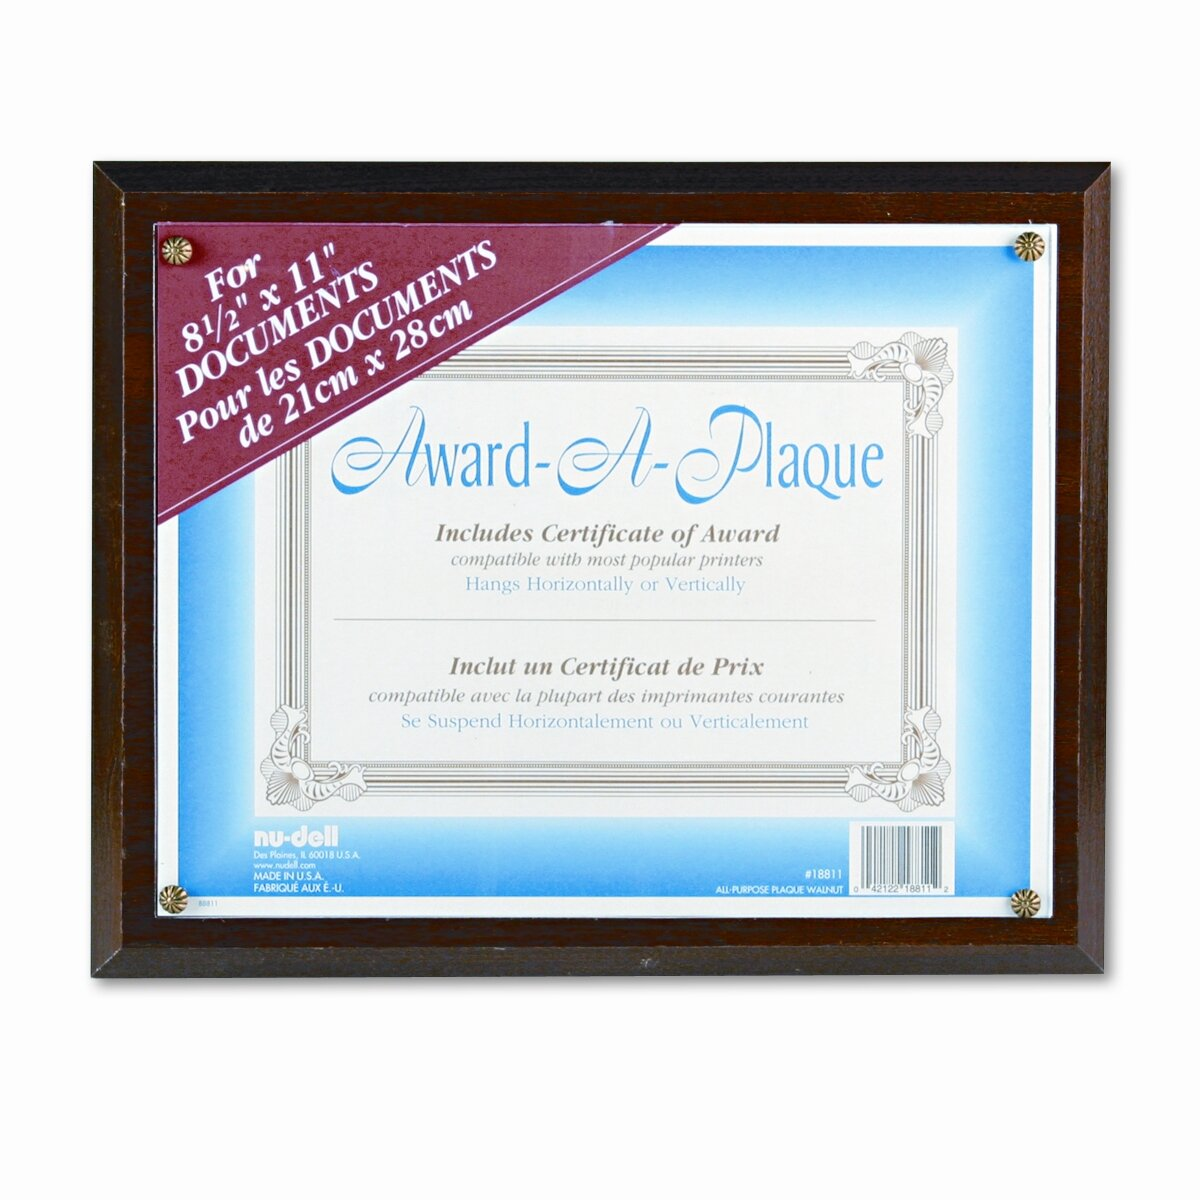 nu dell award a plaque document holder acrylic plastic. Black Bedroom Furniture Sets. Home Design Ideas